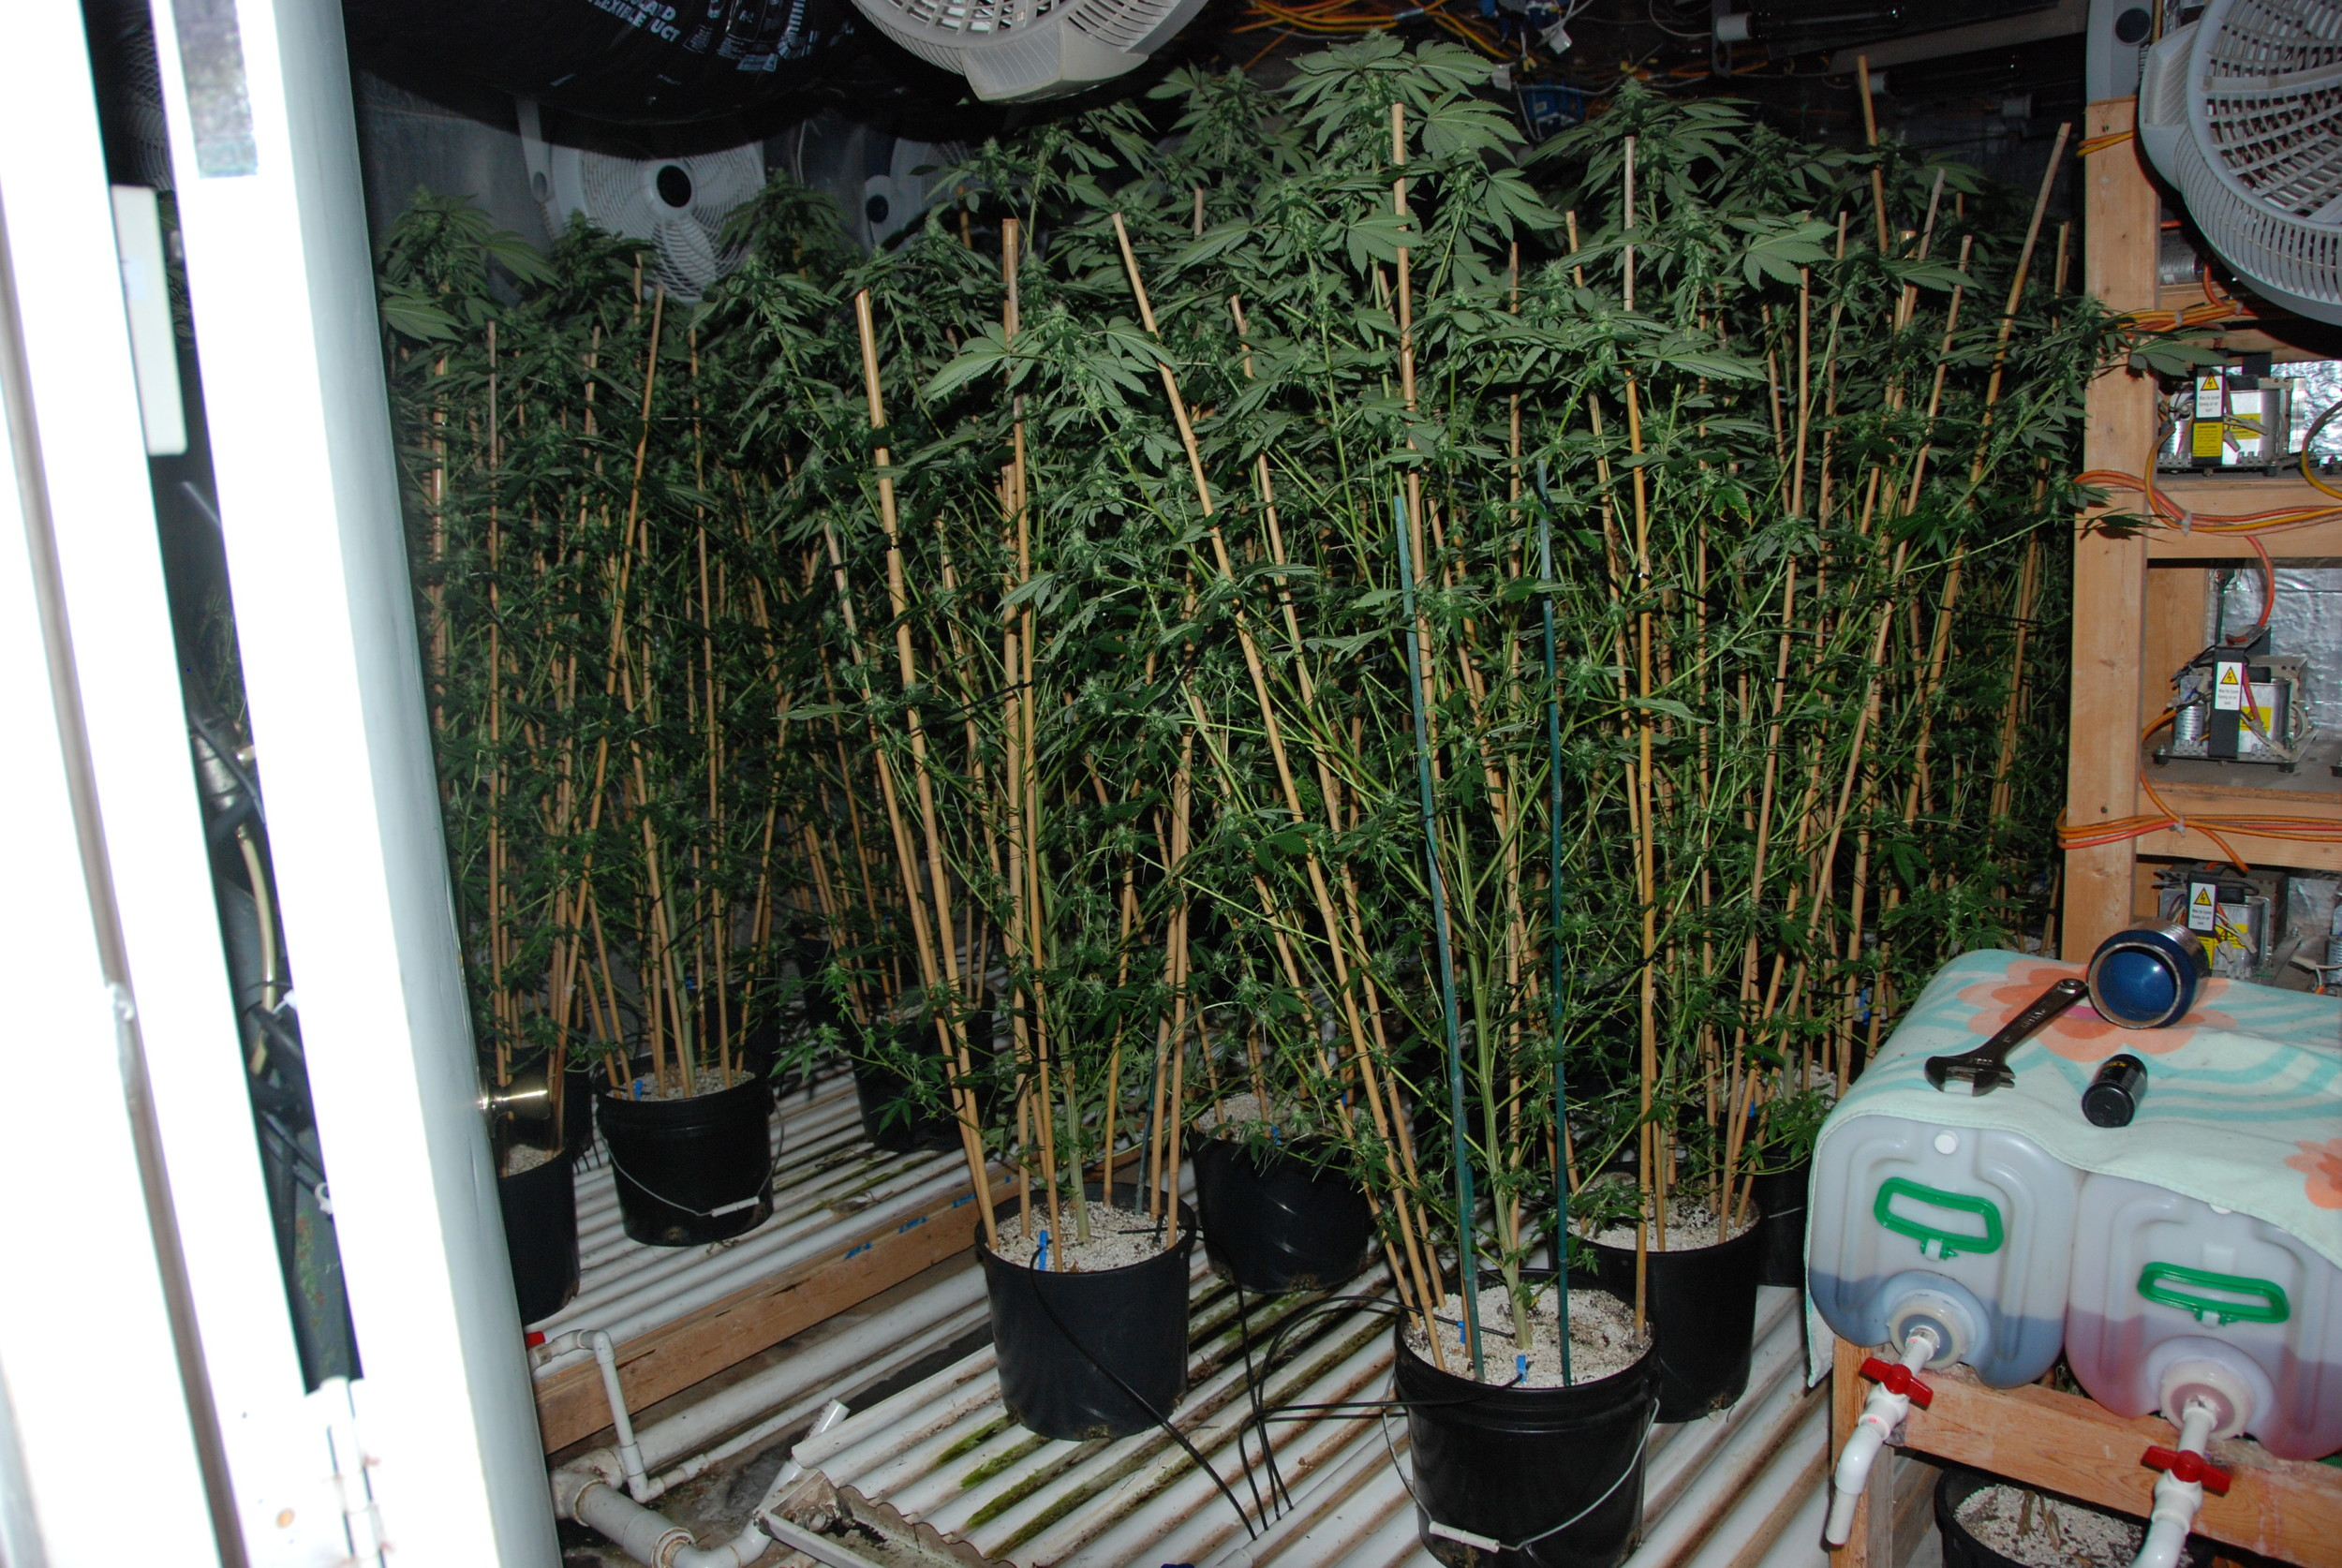 PHOTO: Cape Coral Police Department took down a marijuana grow house operation in NW Cape Coral last night, seizing 151 lbs. of marijuana and arresting two for Cultivation and Trafficking. Pictured here is an interior view of the home (with numerous pot plants) located at 51 NW 33rd Terrace, Cape Coral. (Photo Courtesy ofCape Coral Police Department)